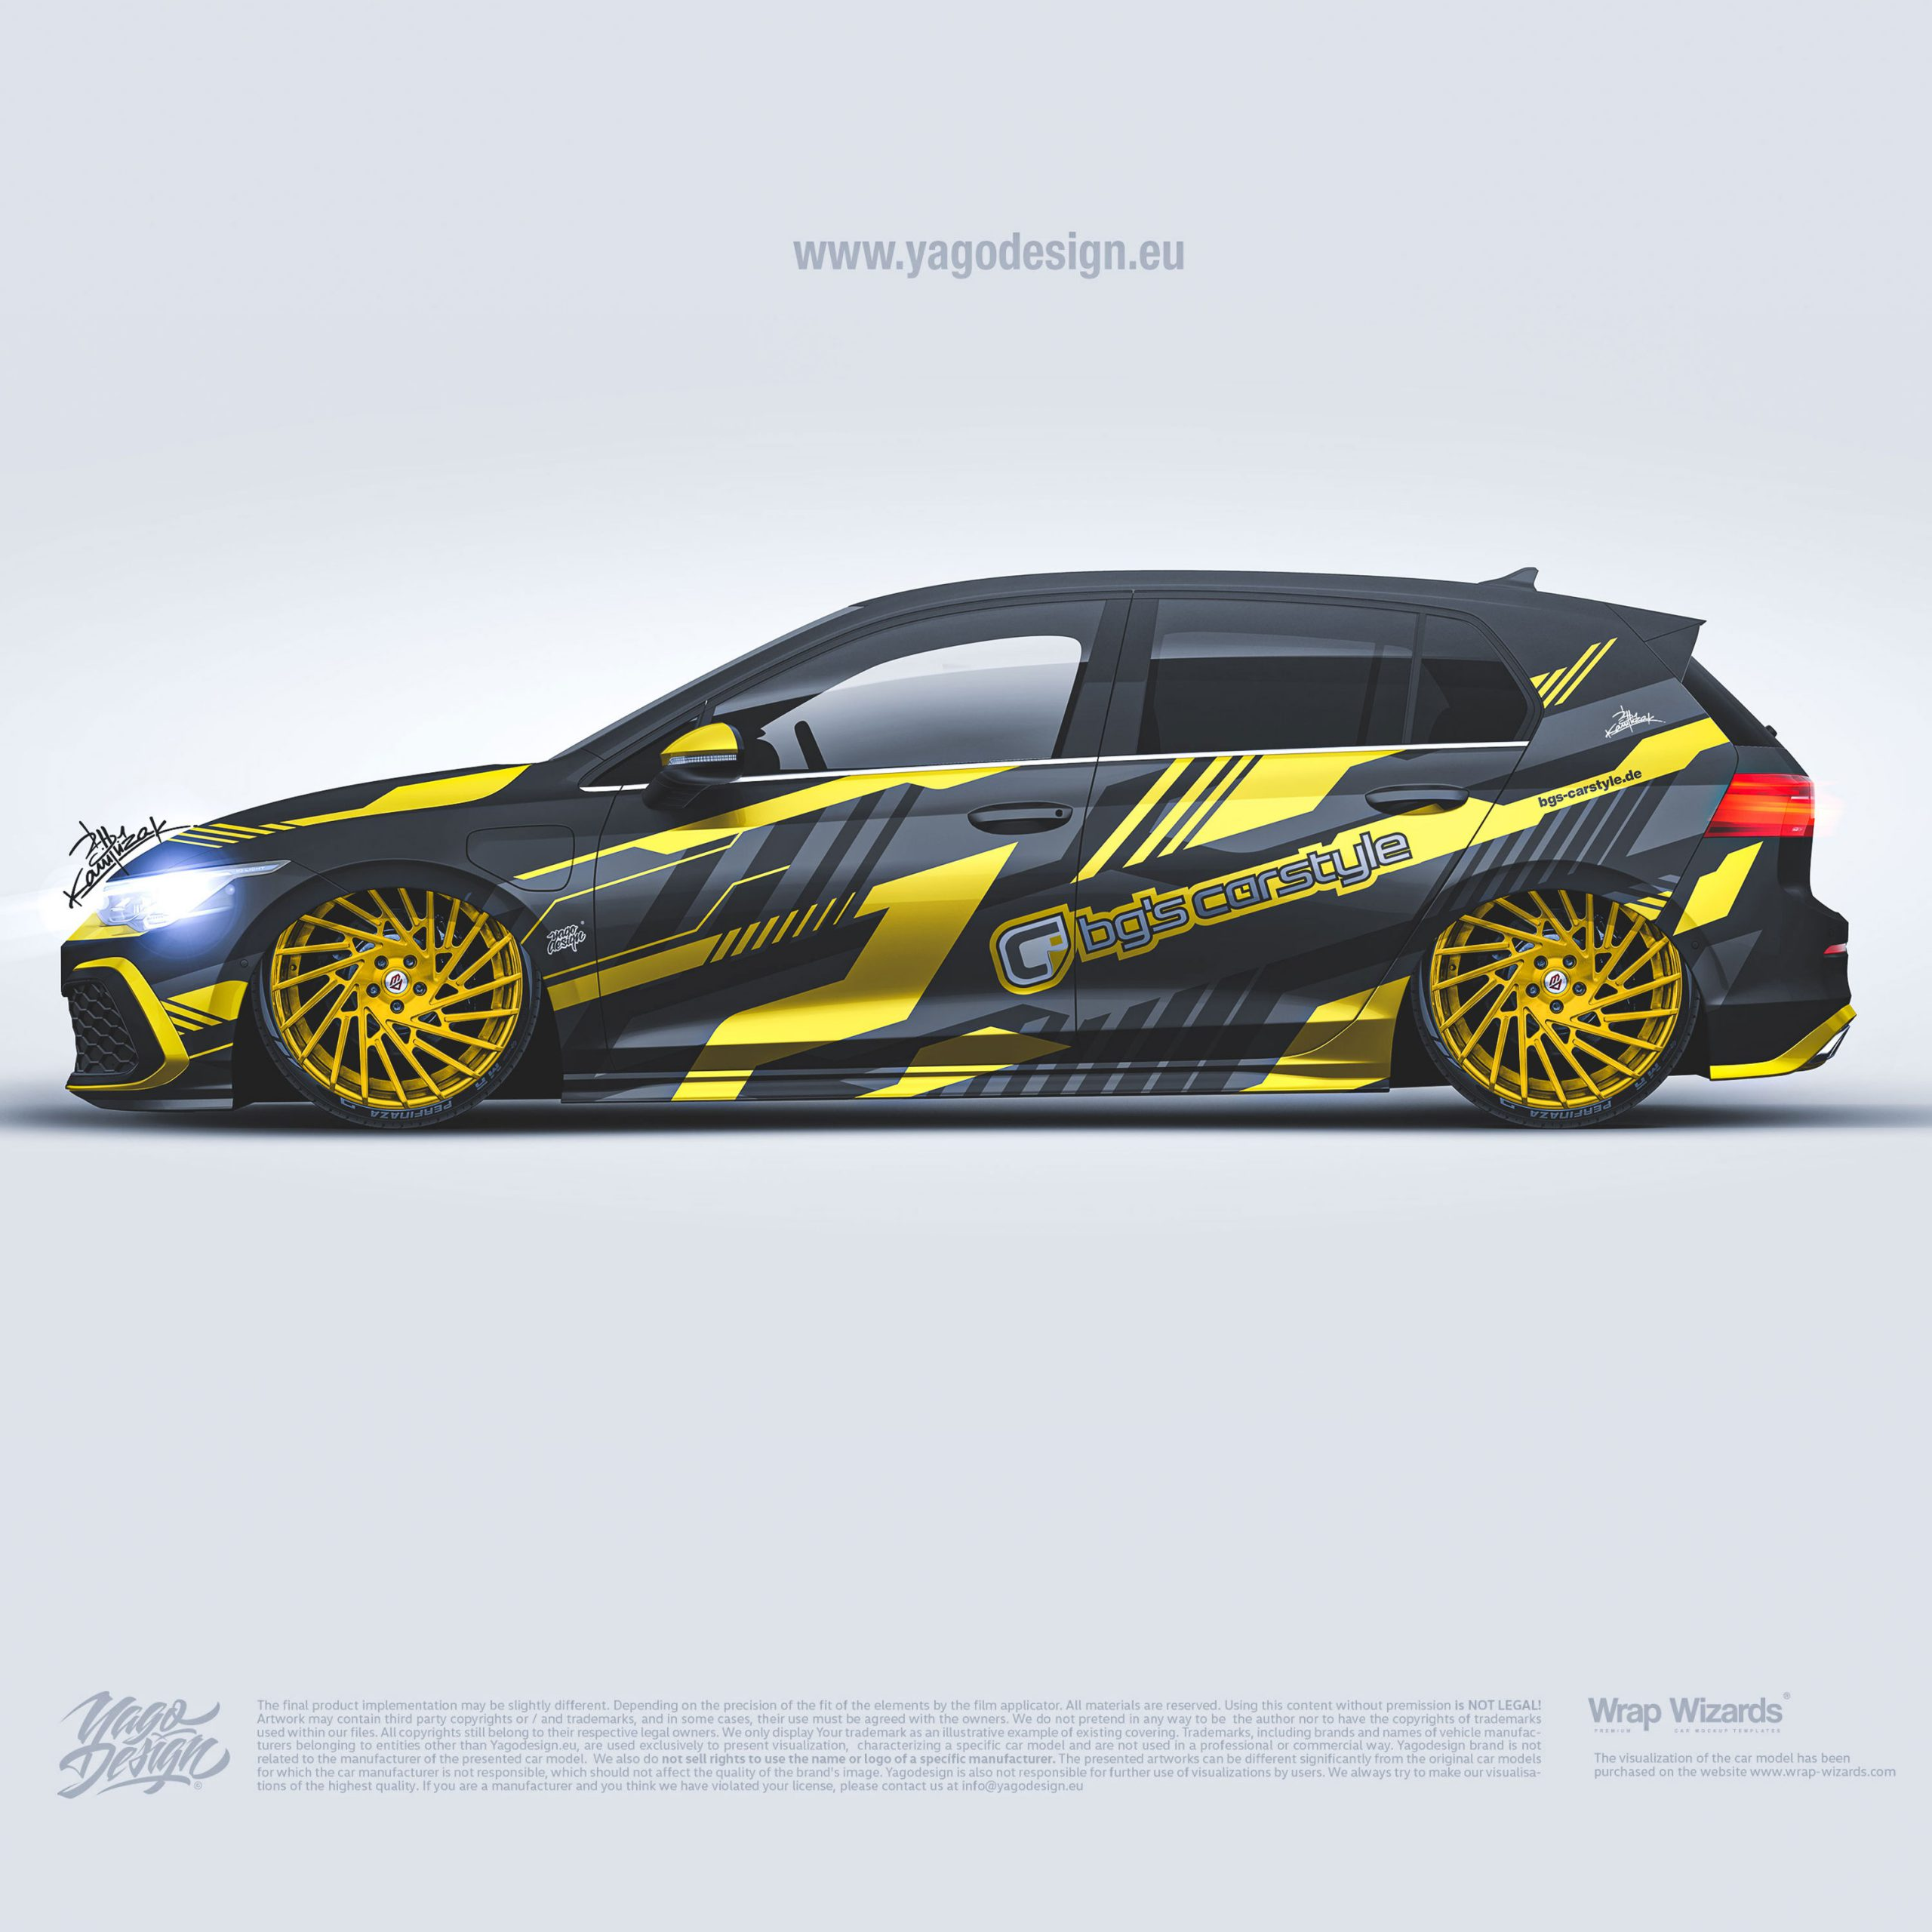 Volkswagen-Golf-MK8-GTI-BGScarstyle-by-Yagodesign-Livery-Design-Car-wrapping-studio